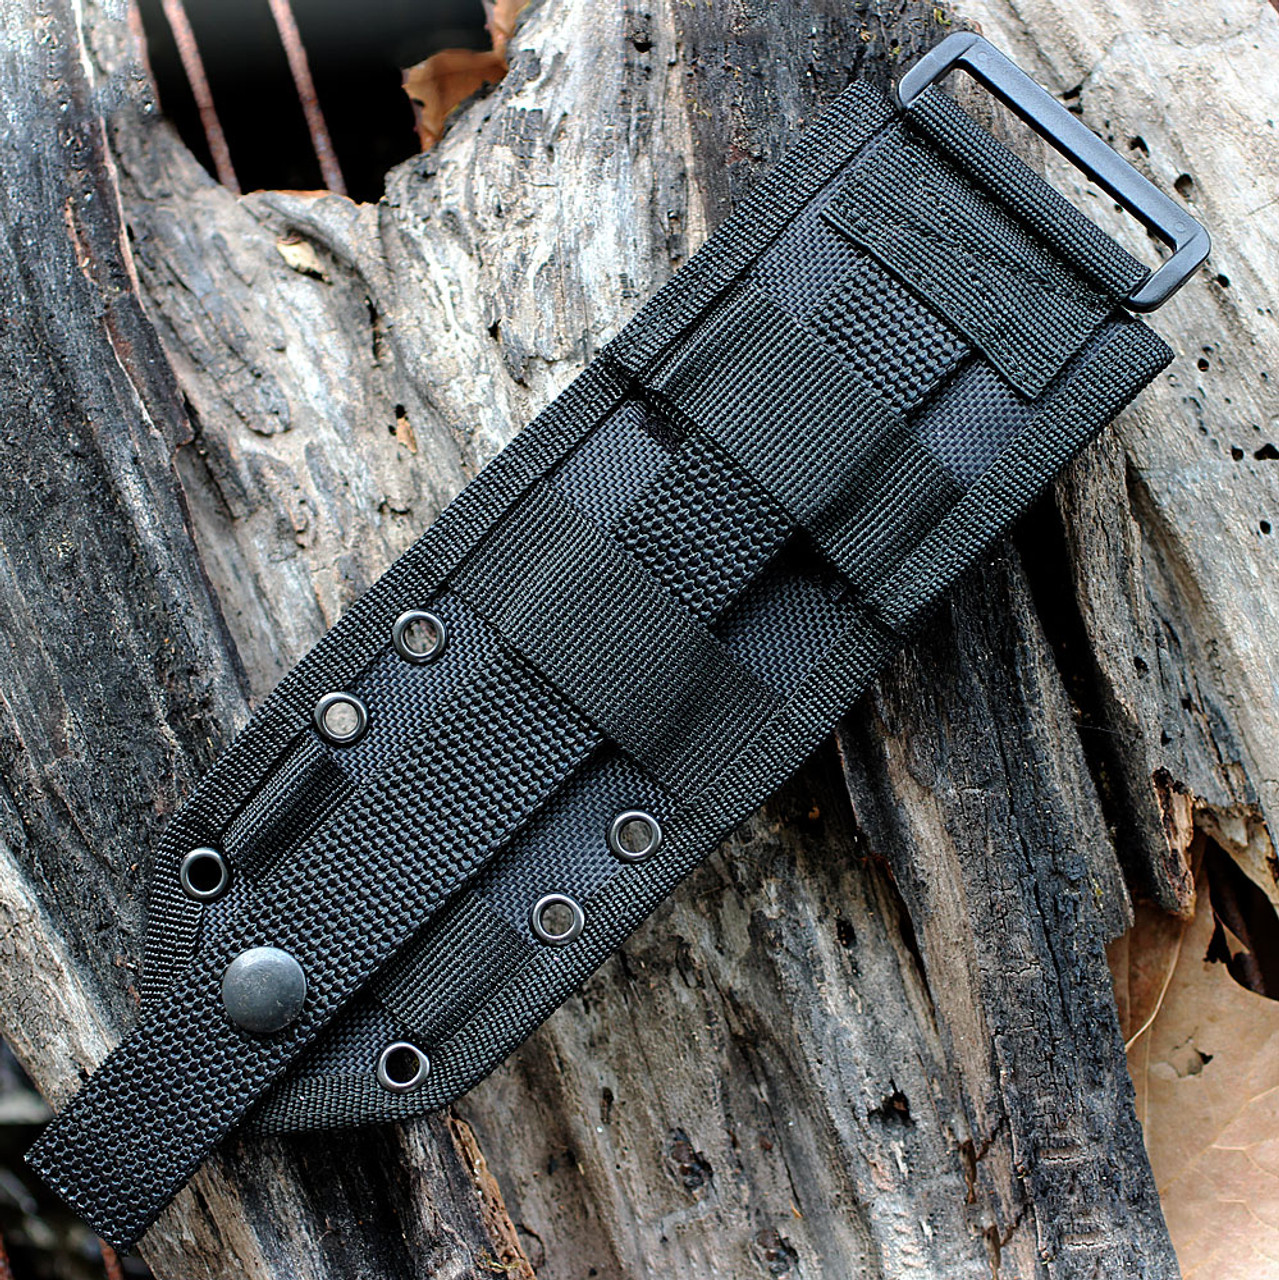 ESEE 4S-MB-OD, Orange G-10 Handles with MOLLE Back and MOLLE Locks